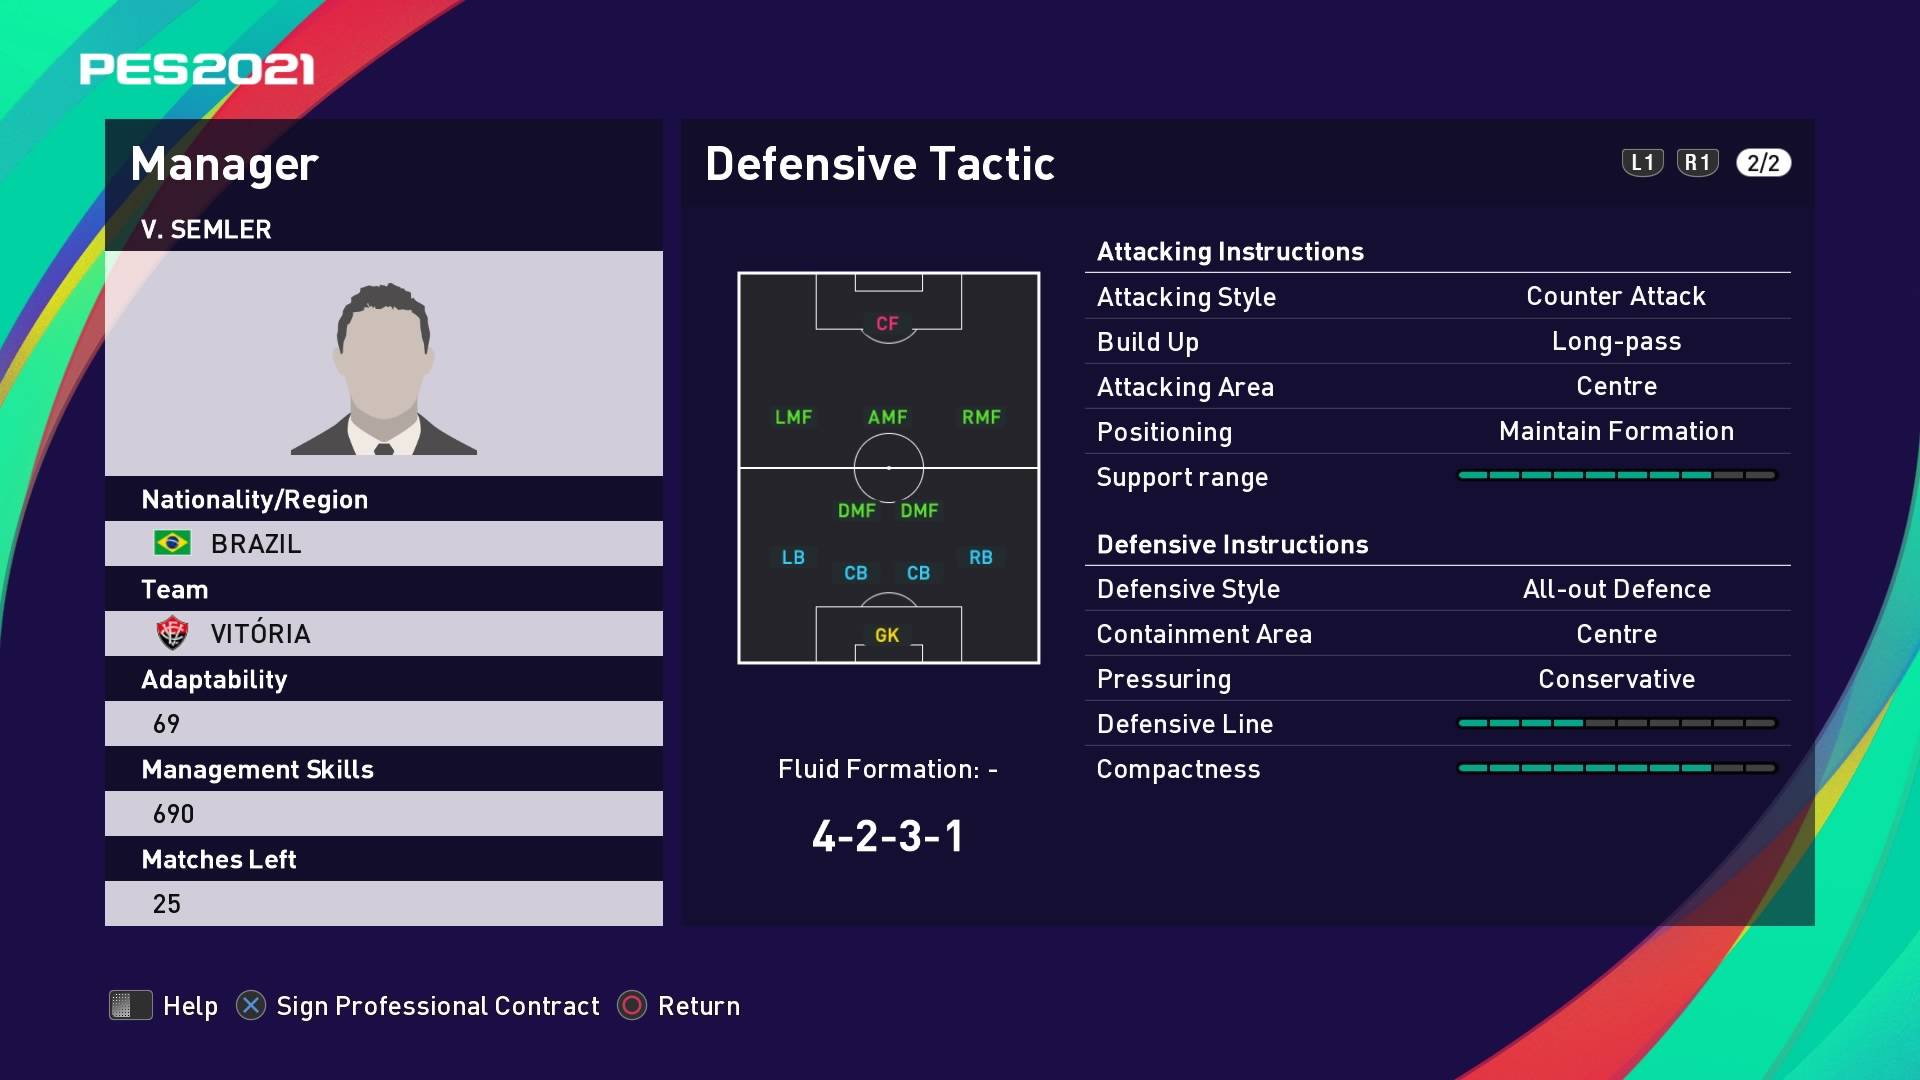 V. Semler (Bruno Pivetti) Defensive Tactic in PES 2021 myClub